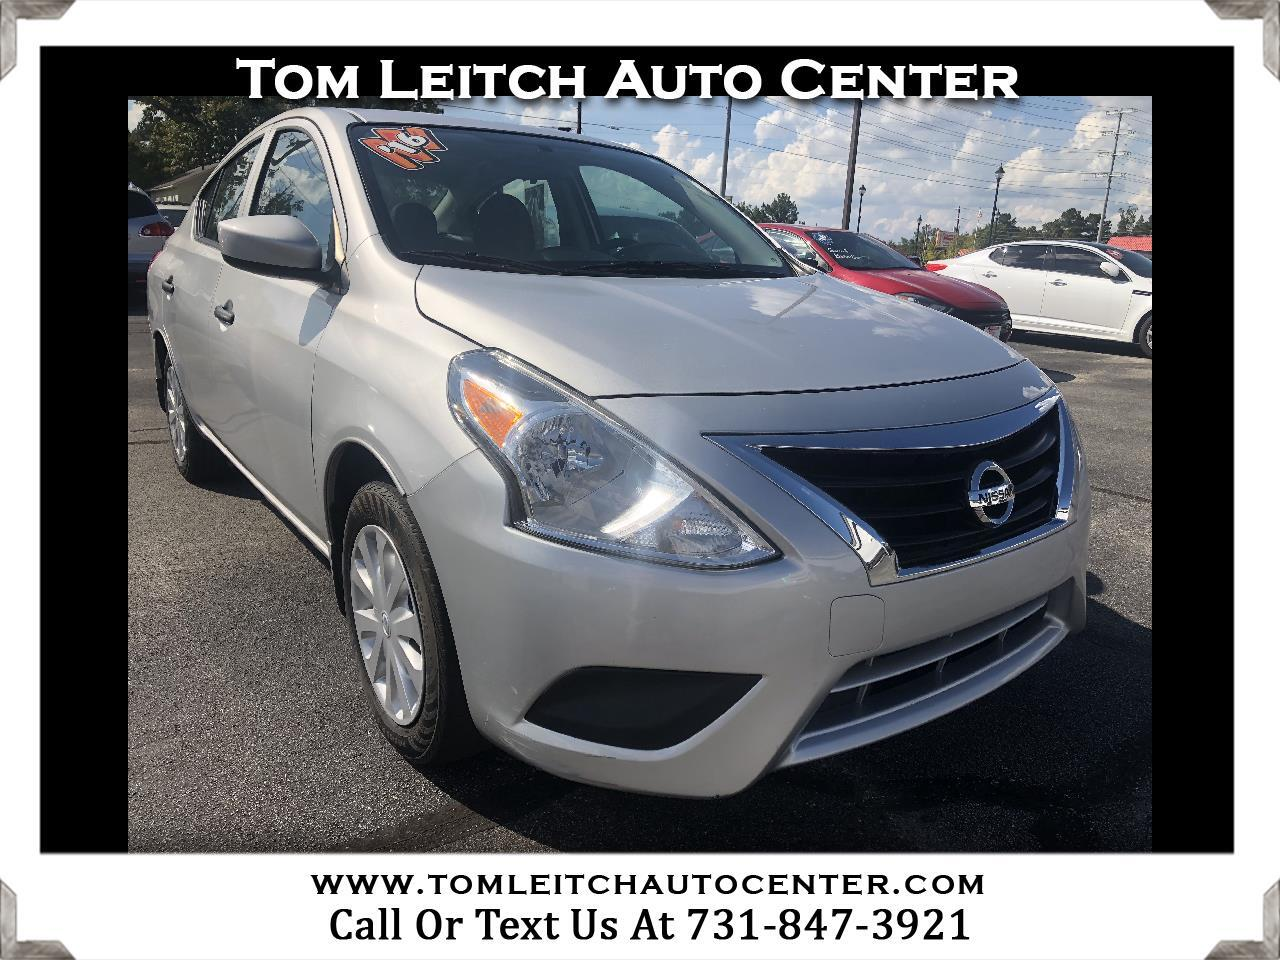 used 2016 nissan versa 4dr sdn cvt 1 6 s plus for sale in parsons tn 38363 tom leitch auto center. Black Bedroom Furniture Sets. Home Design Ideas